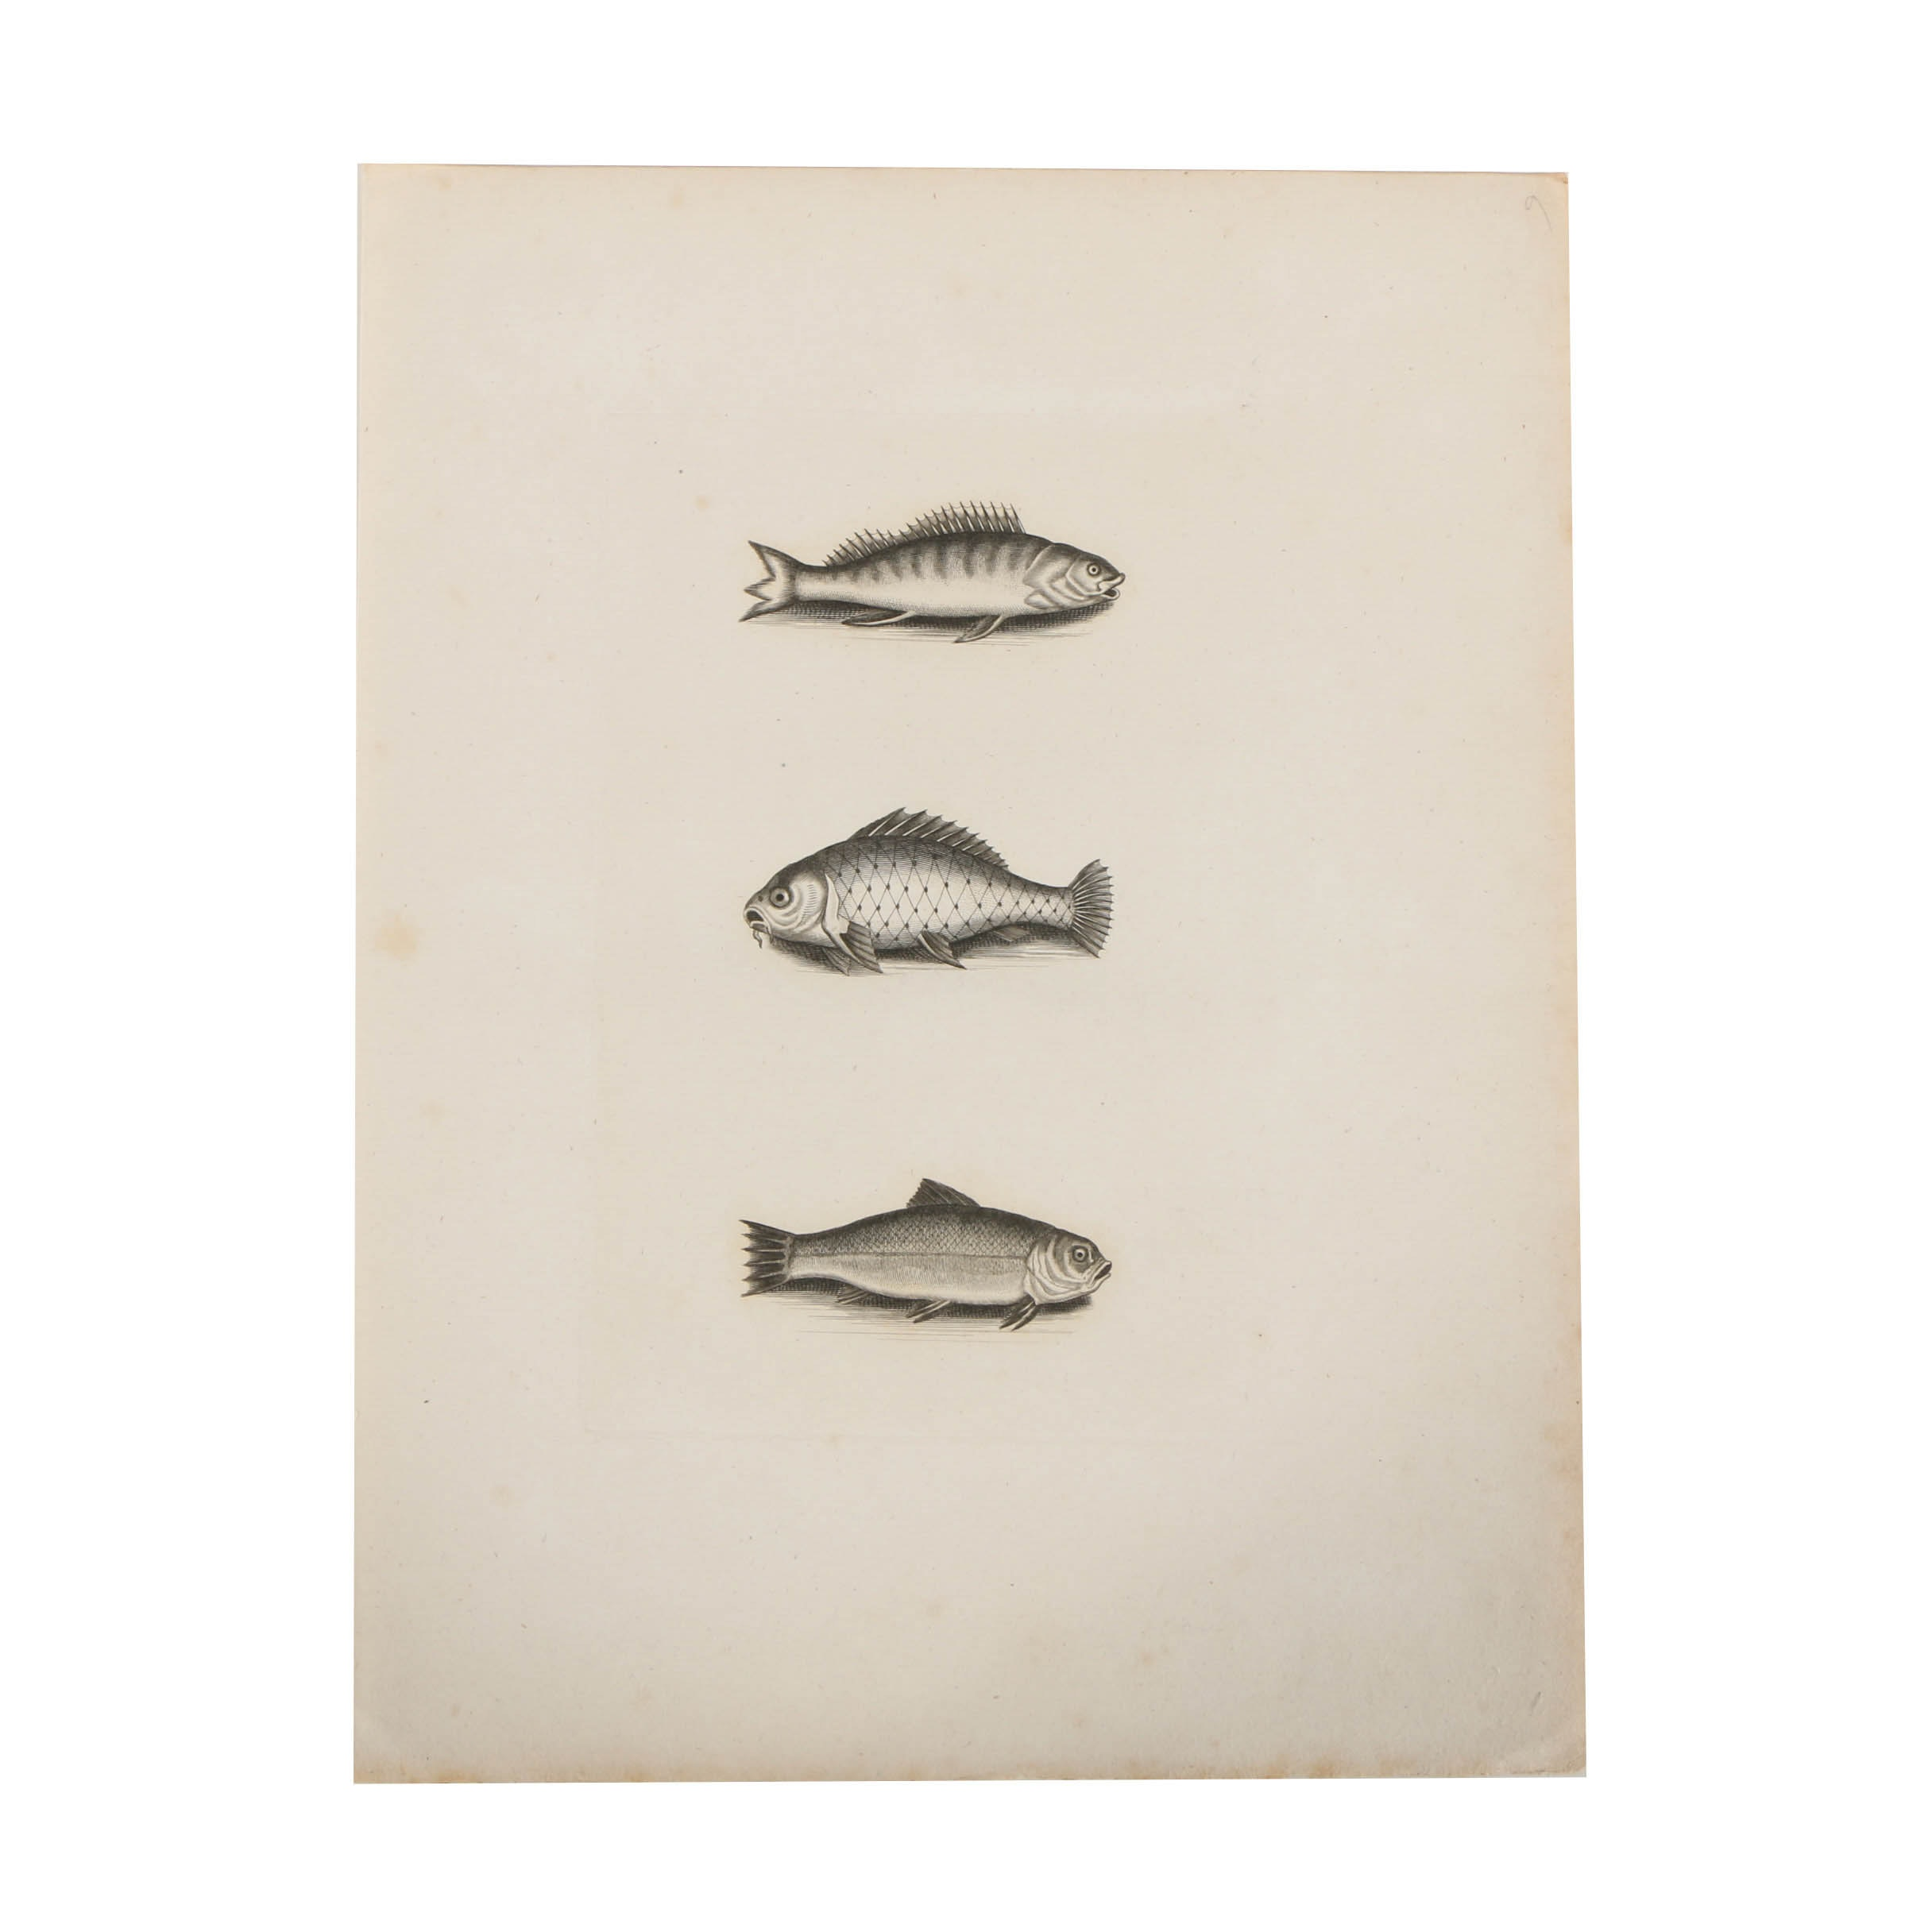 Etching on Paper of Fish